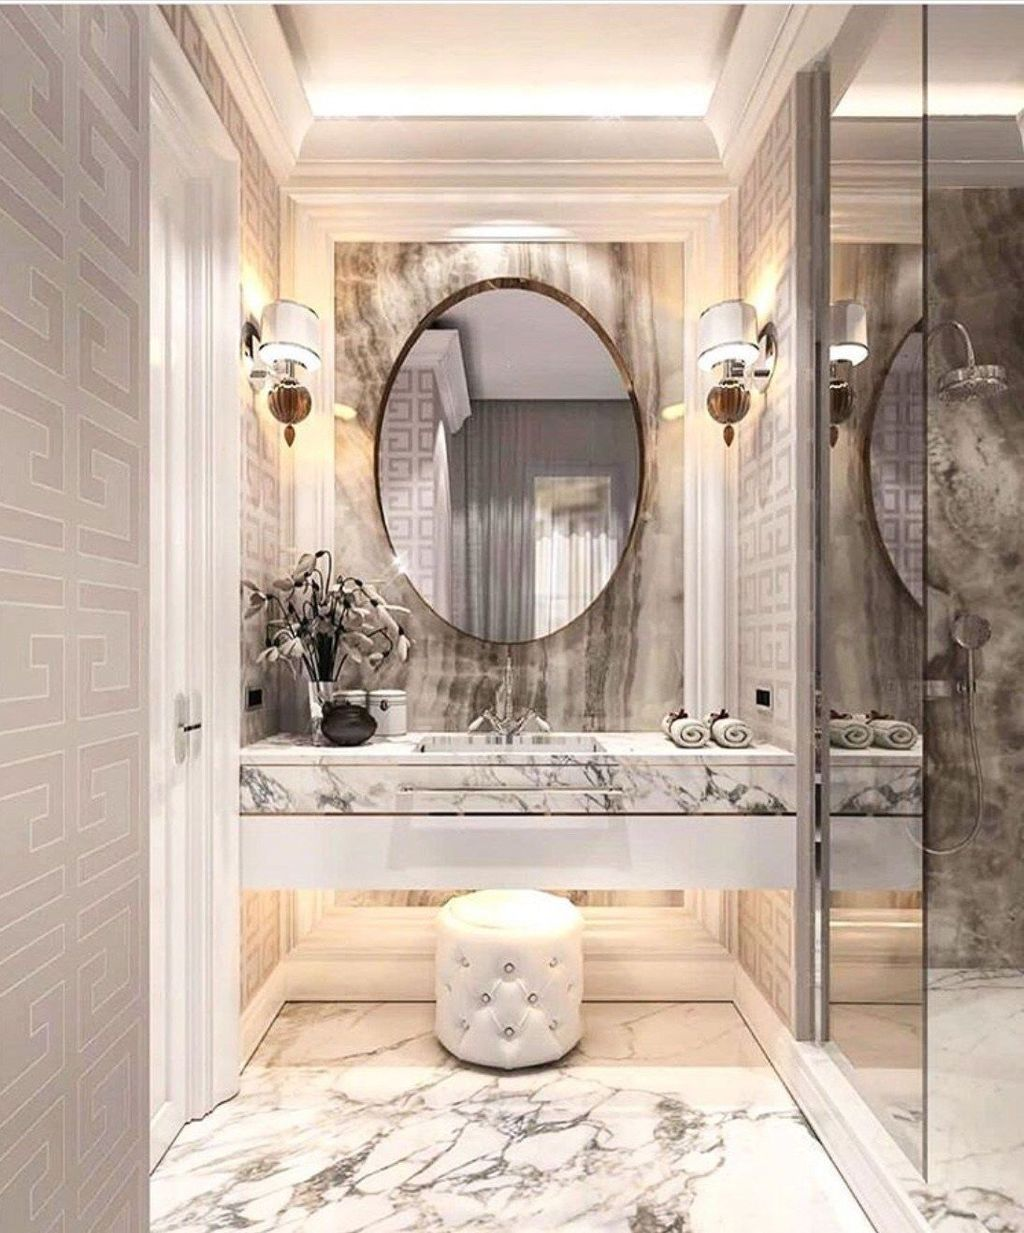 Luxury Bathroom Design And Decor Ideas 12